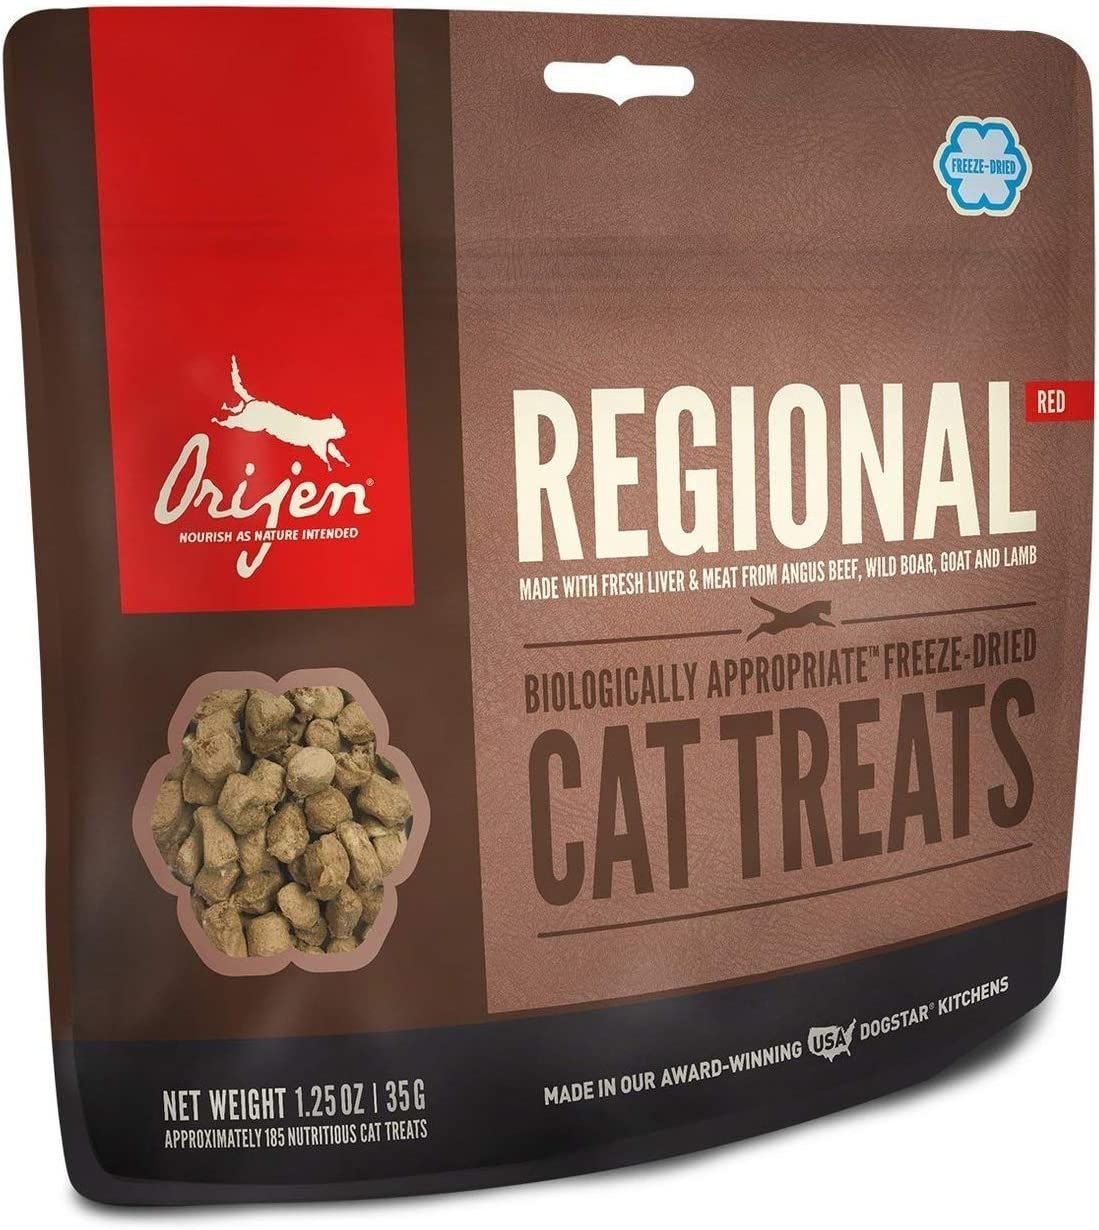 ORIJEN Freeze Dried Cat Treats, Grain Free, Natural & Raw Animal Ingredients, Regional Red, 1oz